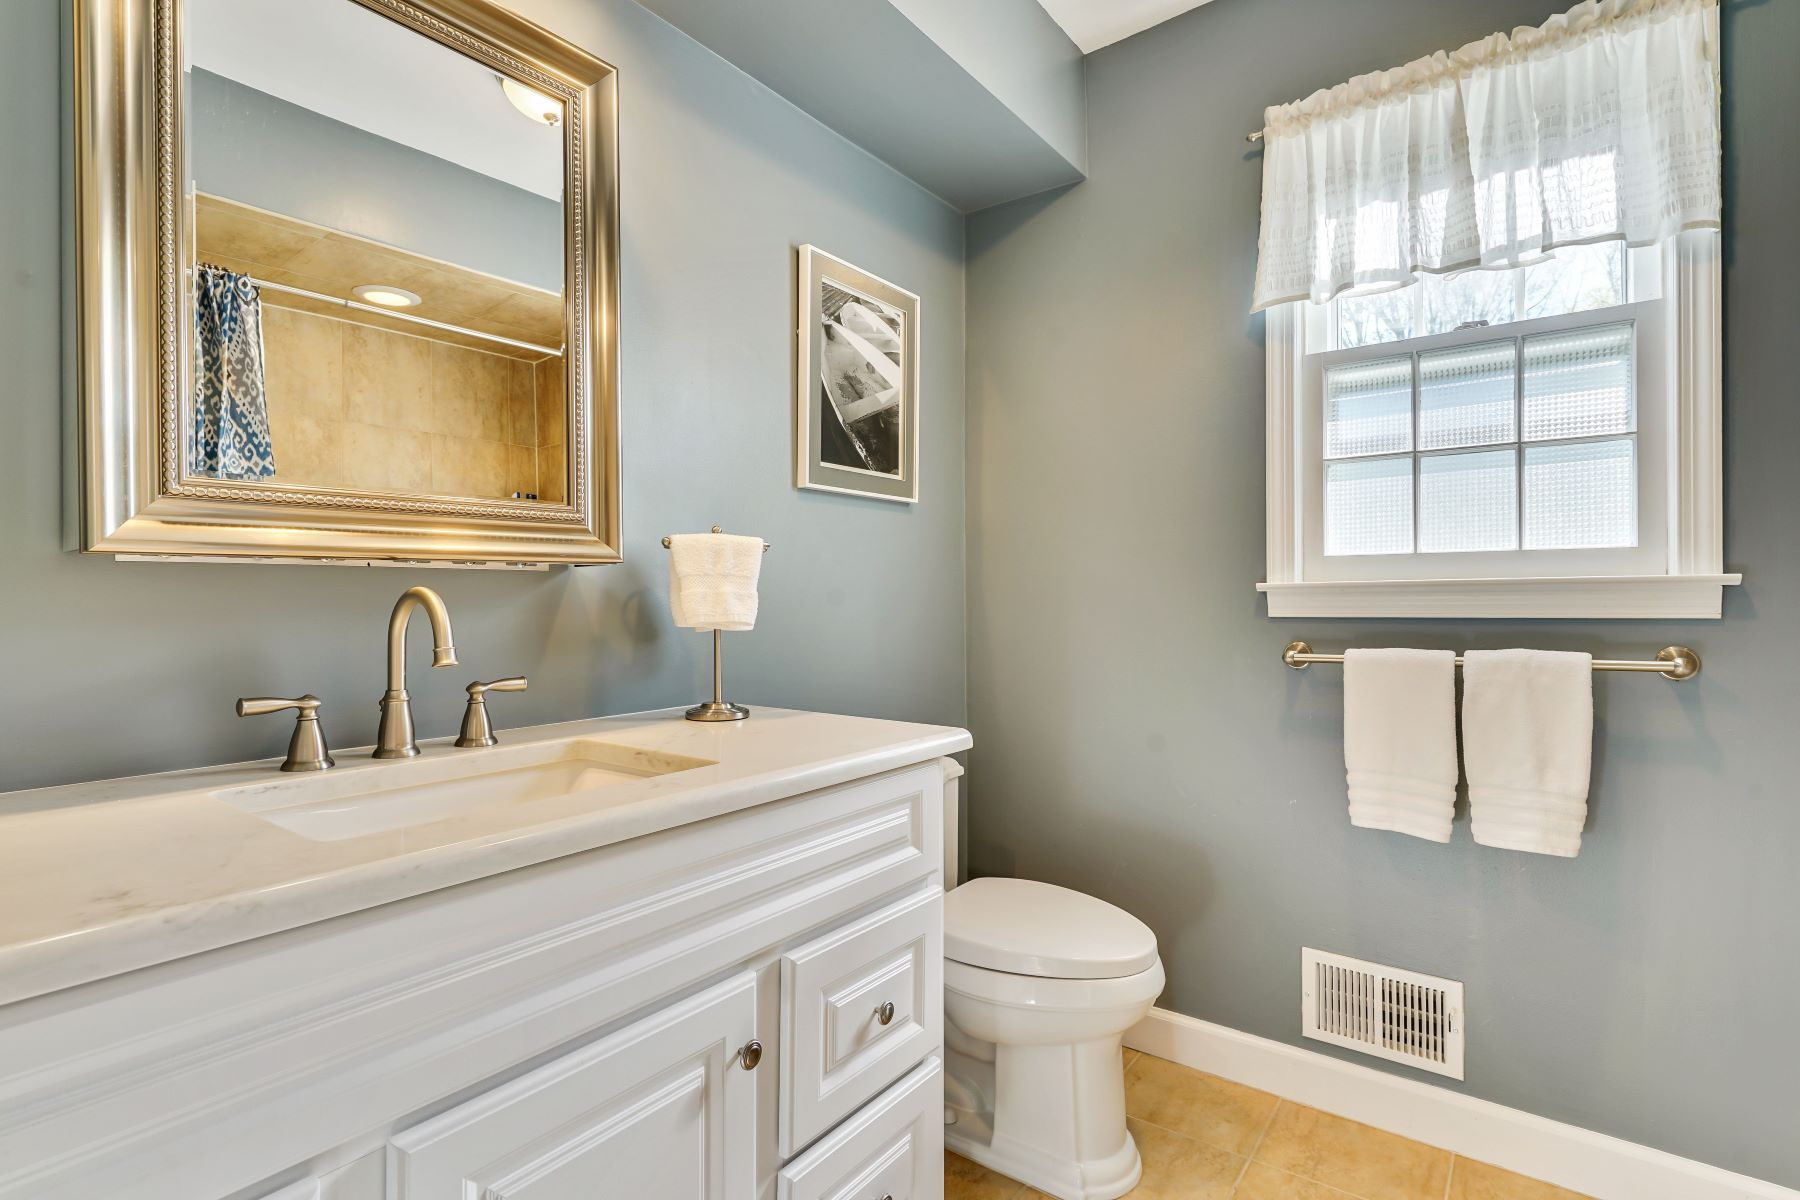 Additional photo for property listing at Updated Colonial in South Wall 2531 Chalet Dr Wall, New Jersey 08736 United States